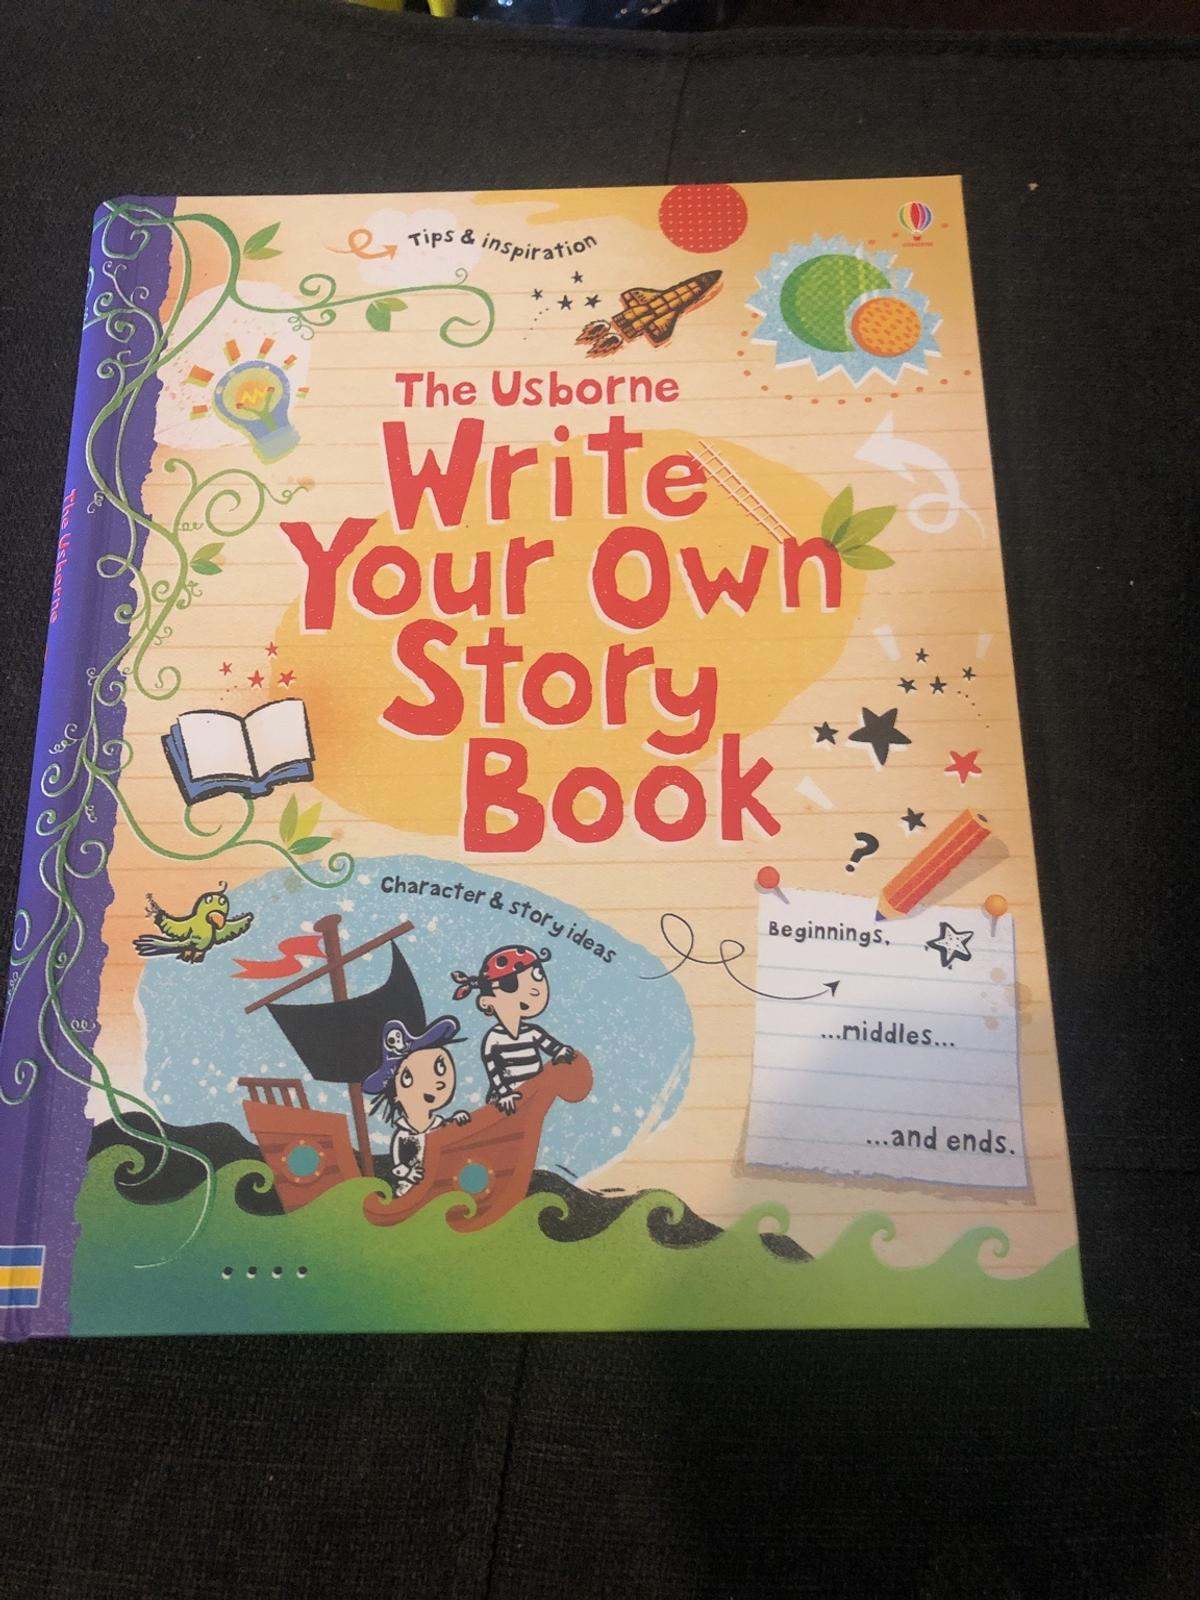 The Usborne- Write Your Own Story Book in London Borough of Bexley